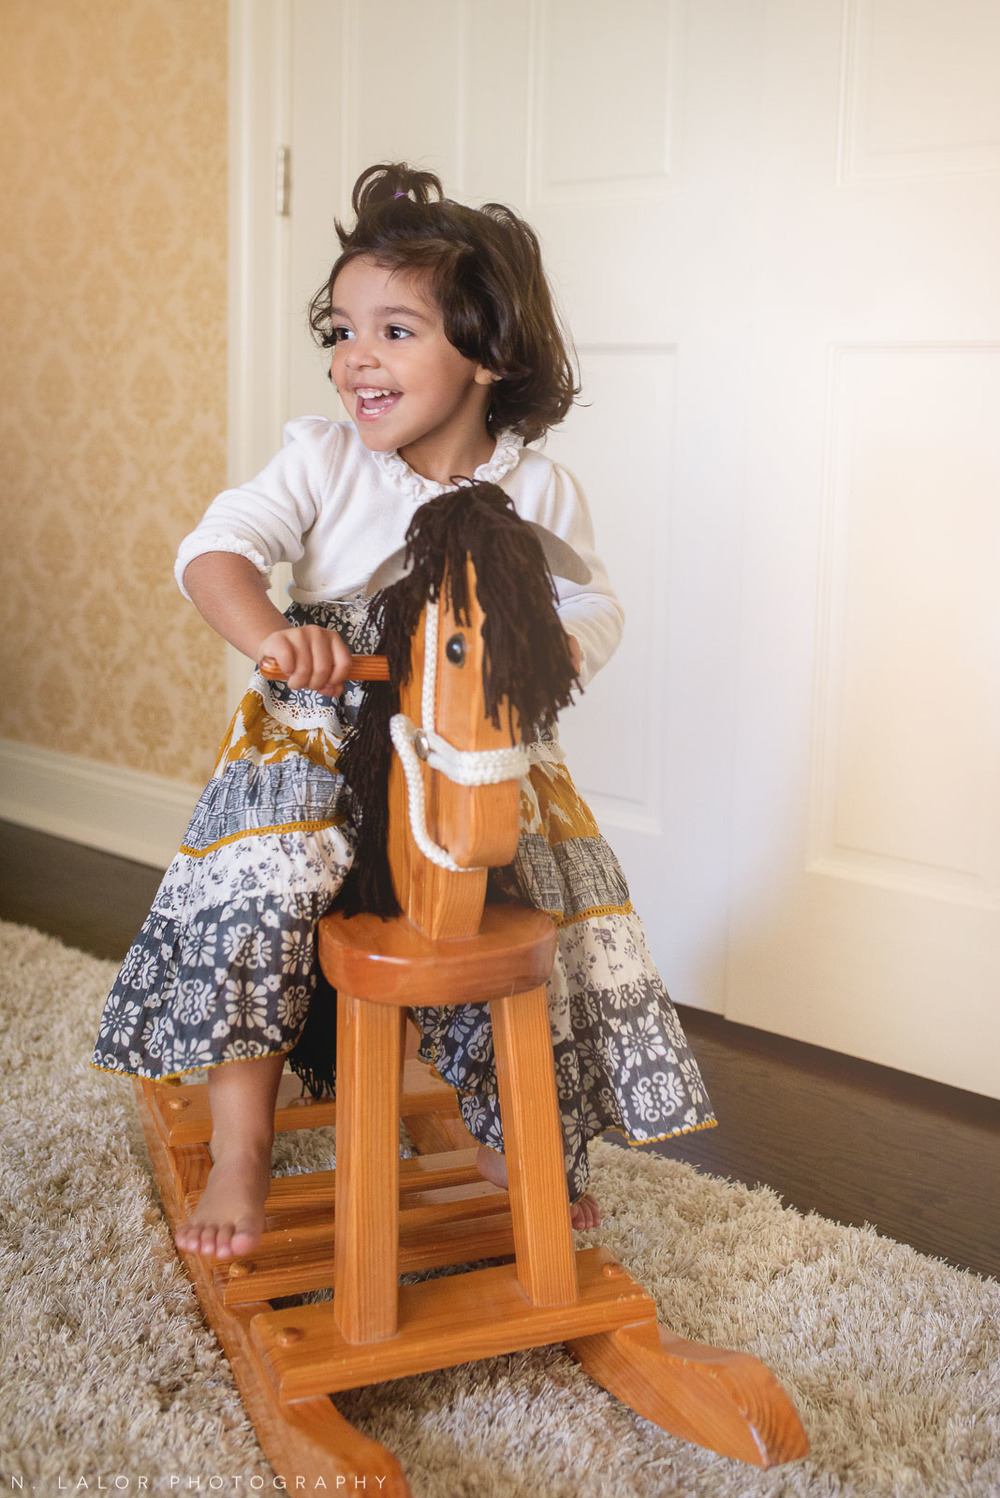 Having fun on a rocking horse. 2-year old girl portrait by N. Lalor Photography.